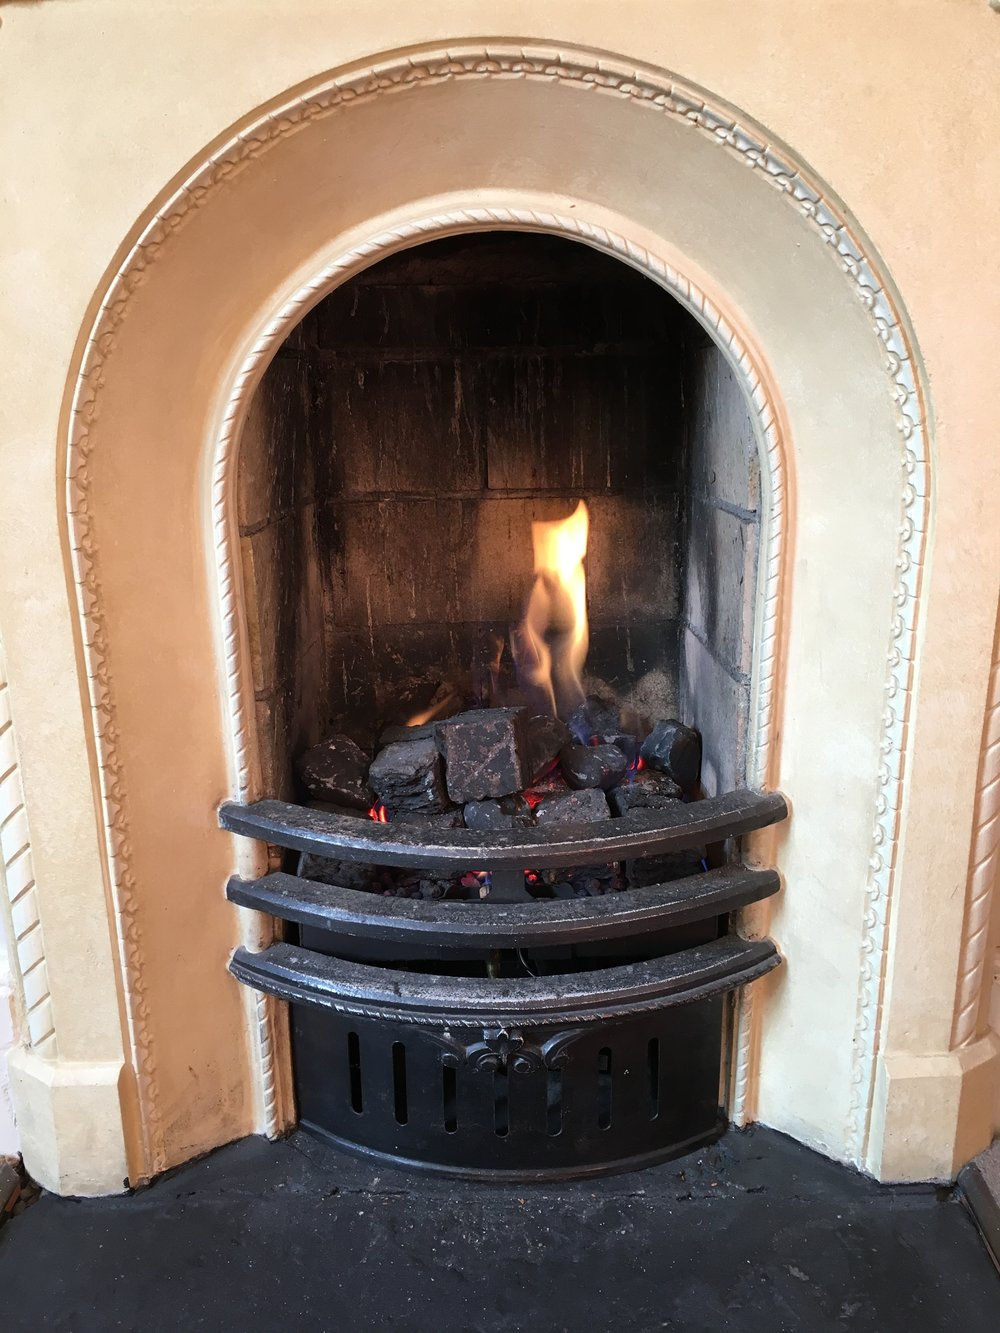 Beautiful gas fireplace, a much welcomed feature on cold winter nights. © Eileen Hsieh / Follow That Bug